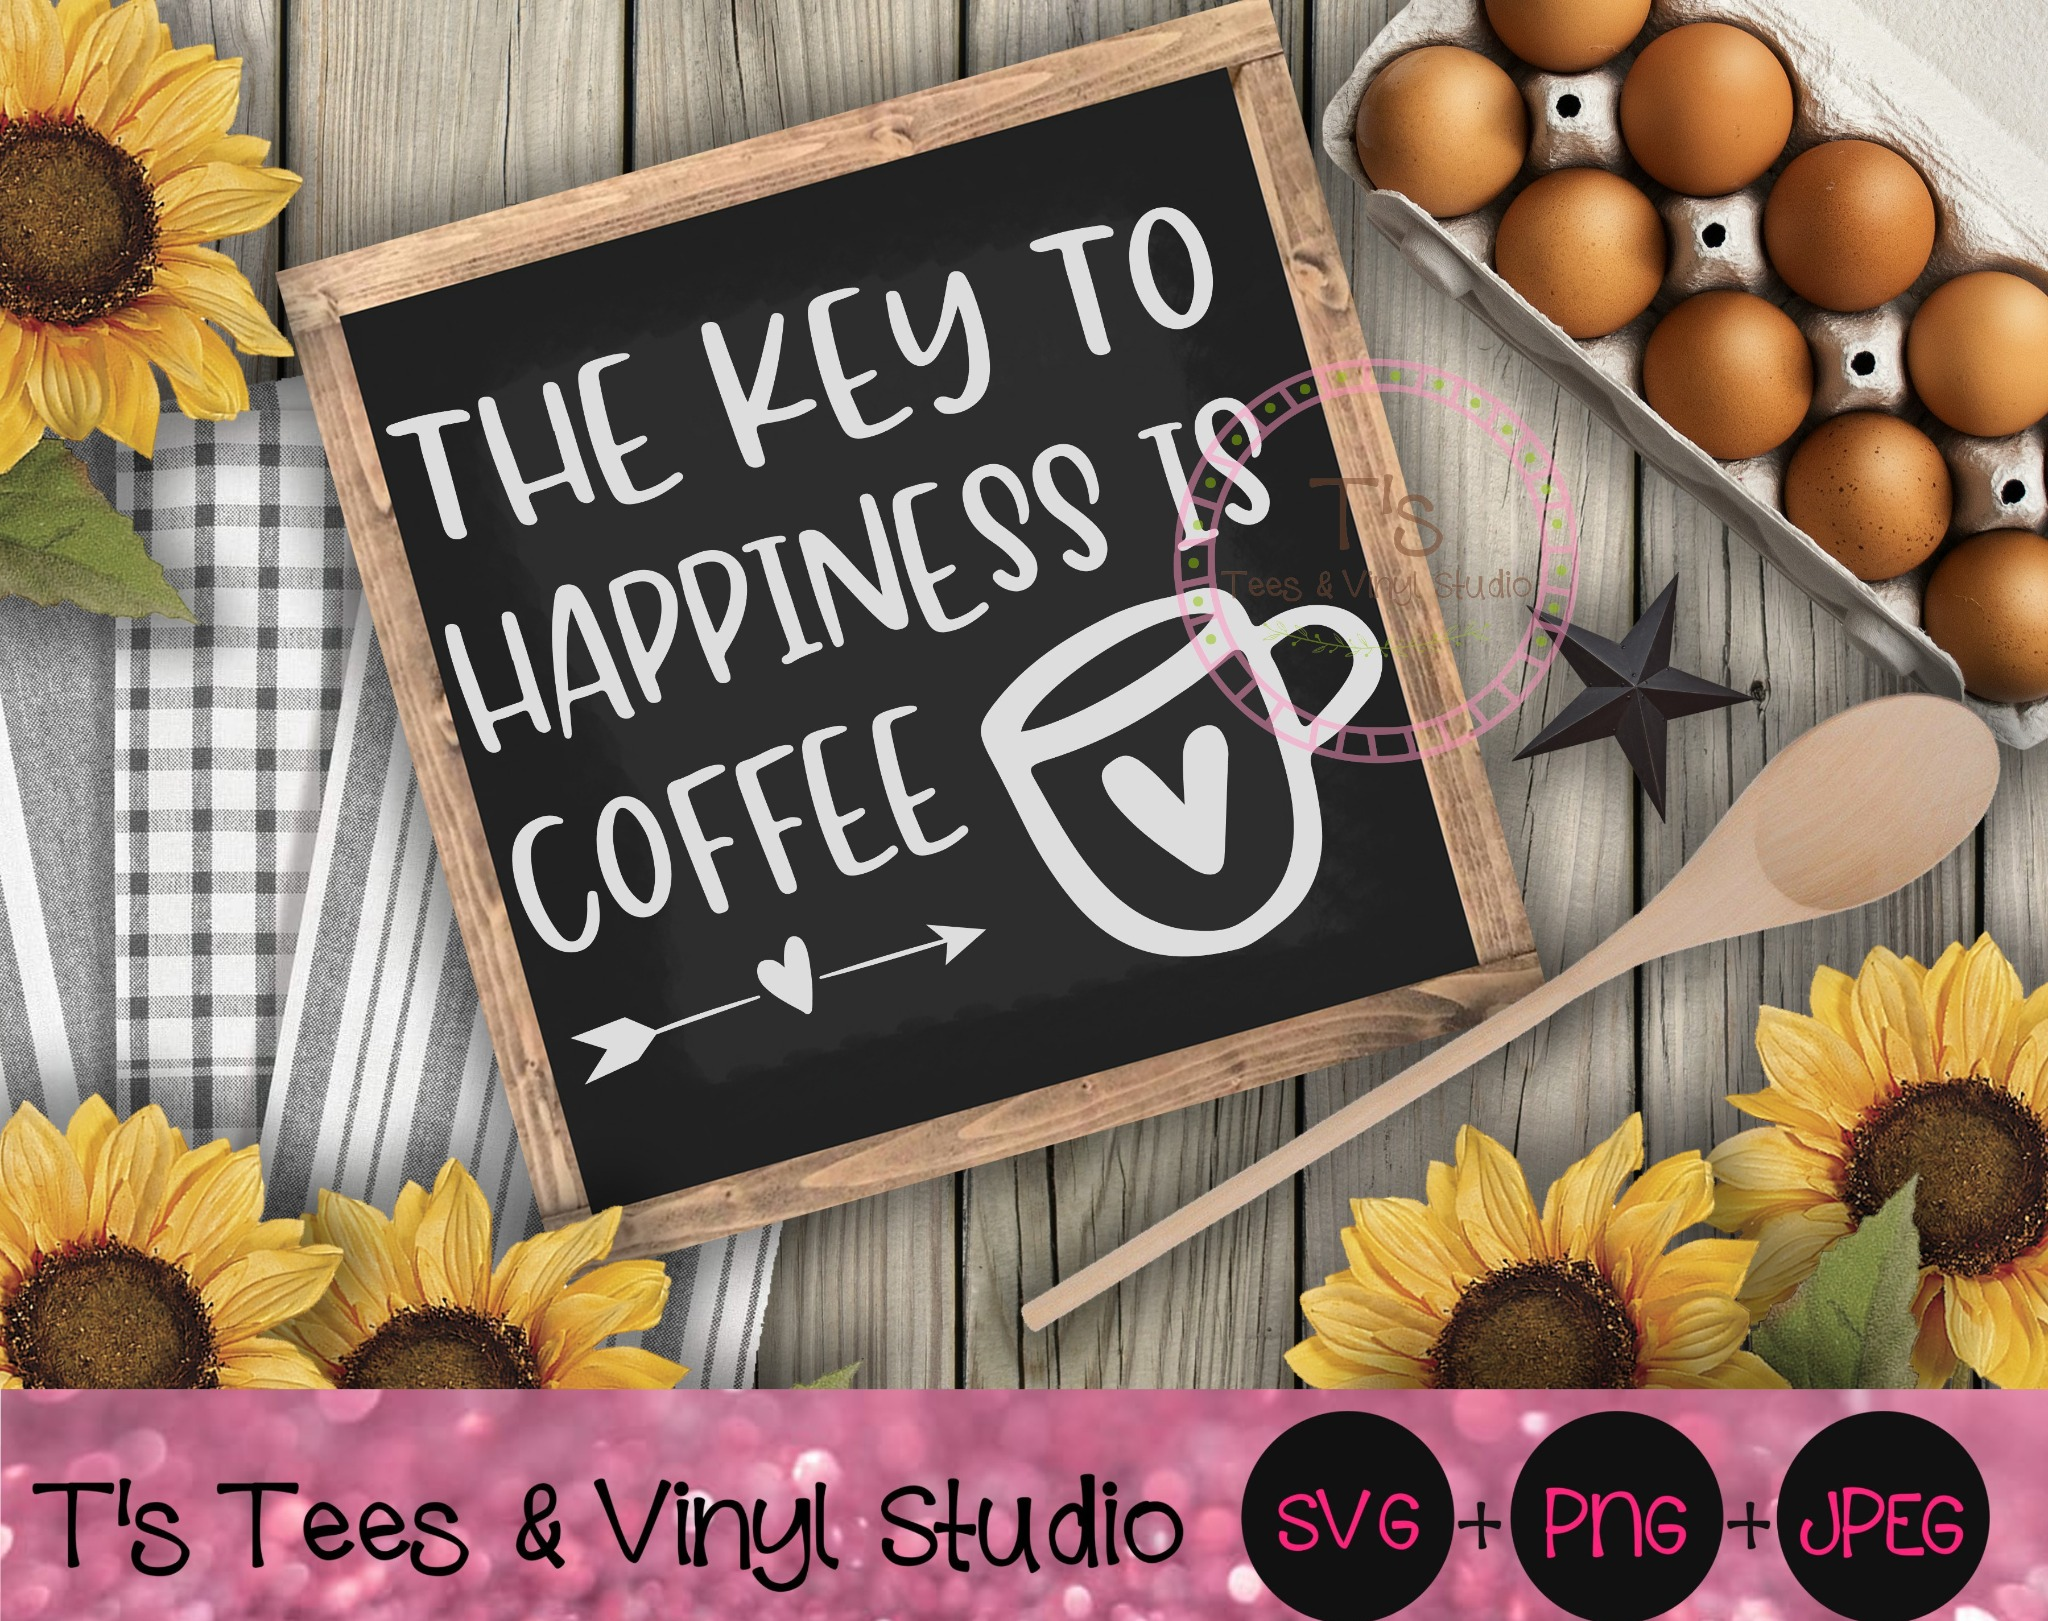 Coffee Svg, Coffee Bar, The Key To Happiness Is Coffee, Coffee Obsessed, Java Lover, Coffee Is My Fa